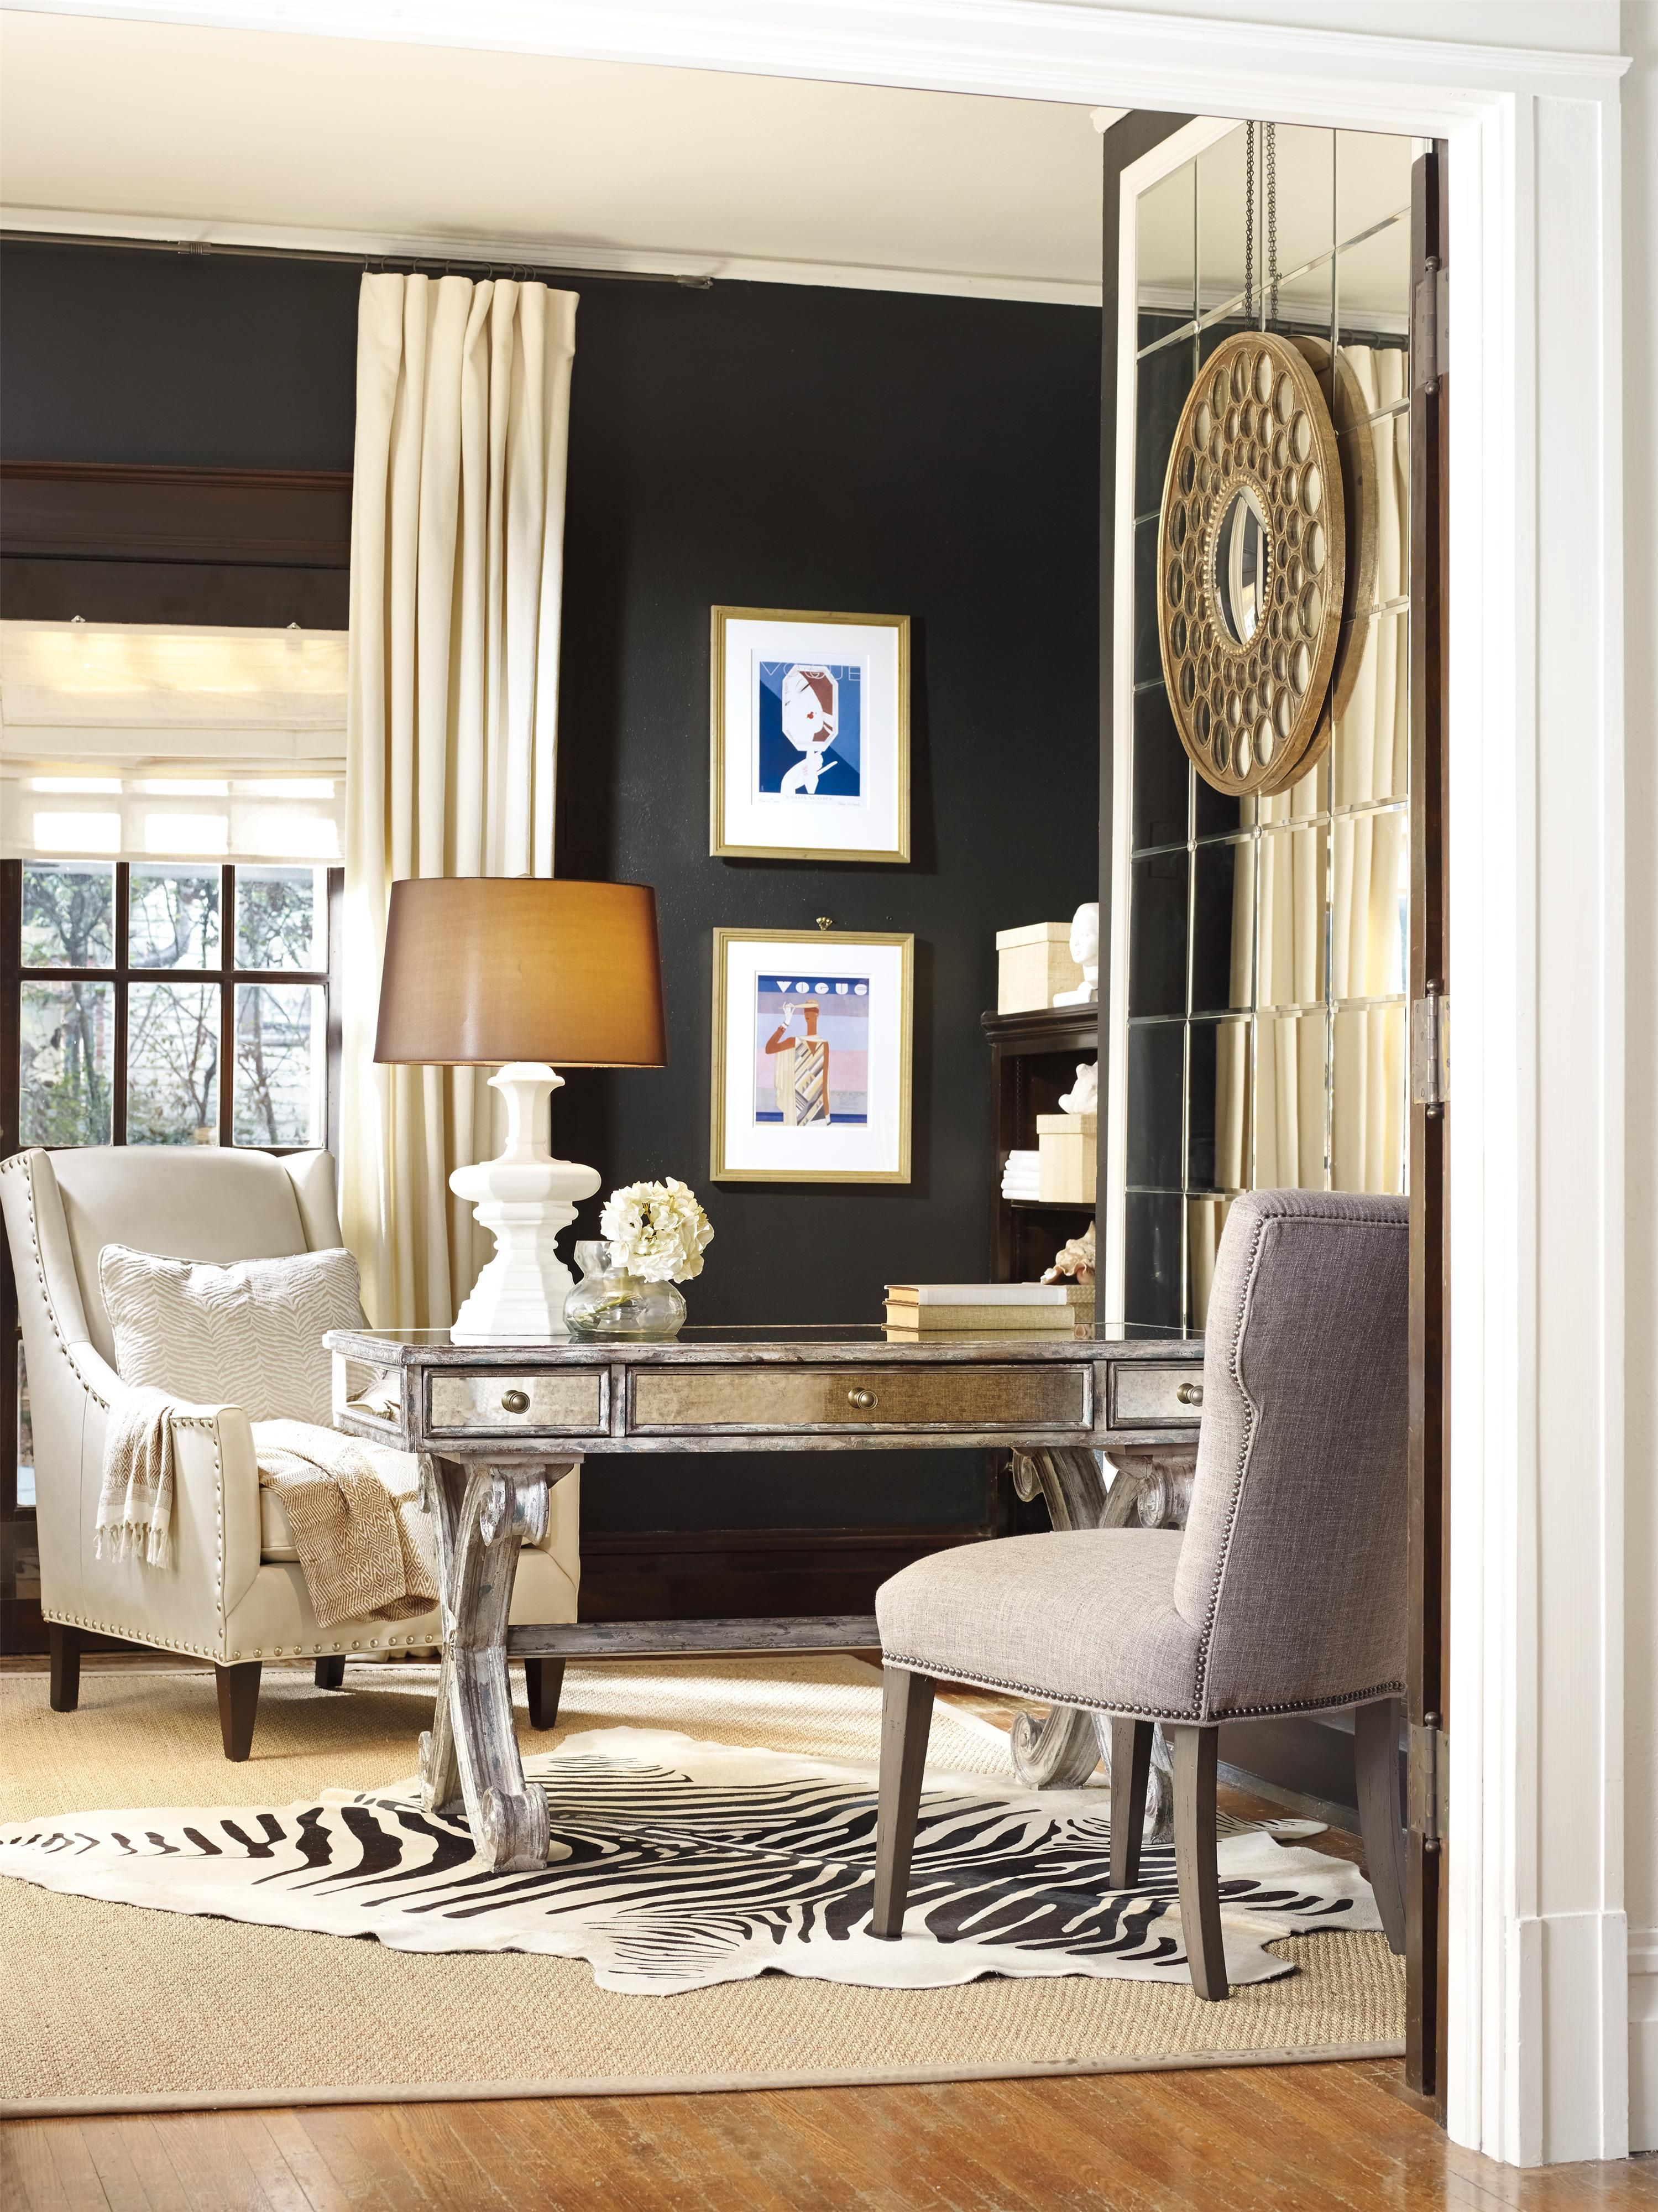 Hooker Furniture Home Office Mirrored Writing Desk With 3 Drawers   Gardiner  Wolf Furniture   Table Desk Baltimore, Towson, Pasadena, Bel Air,  Westminster, ...